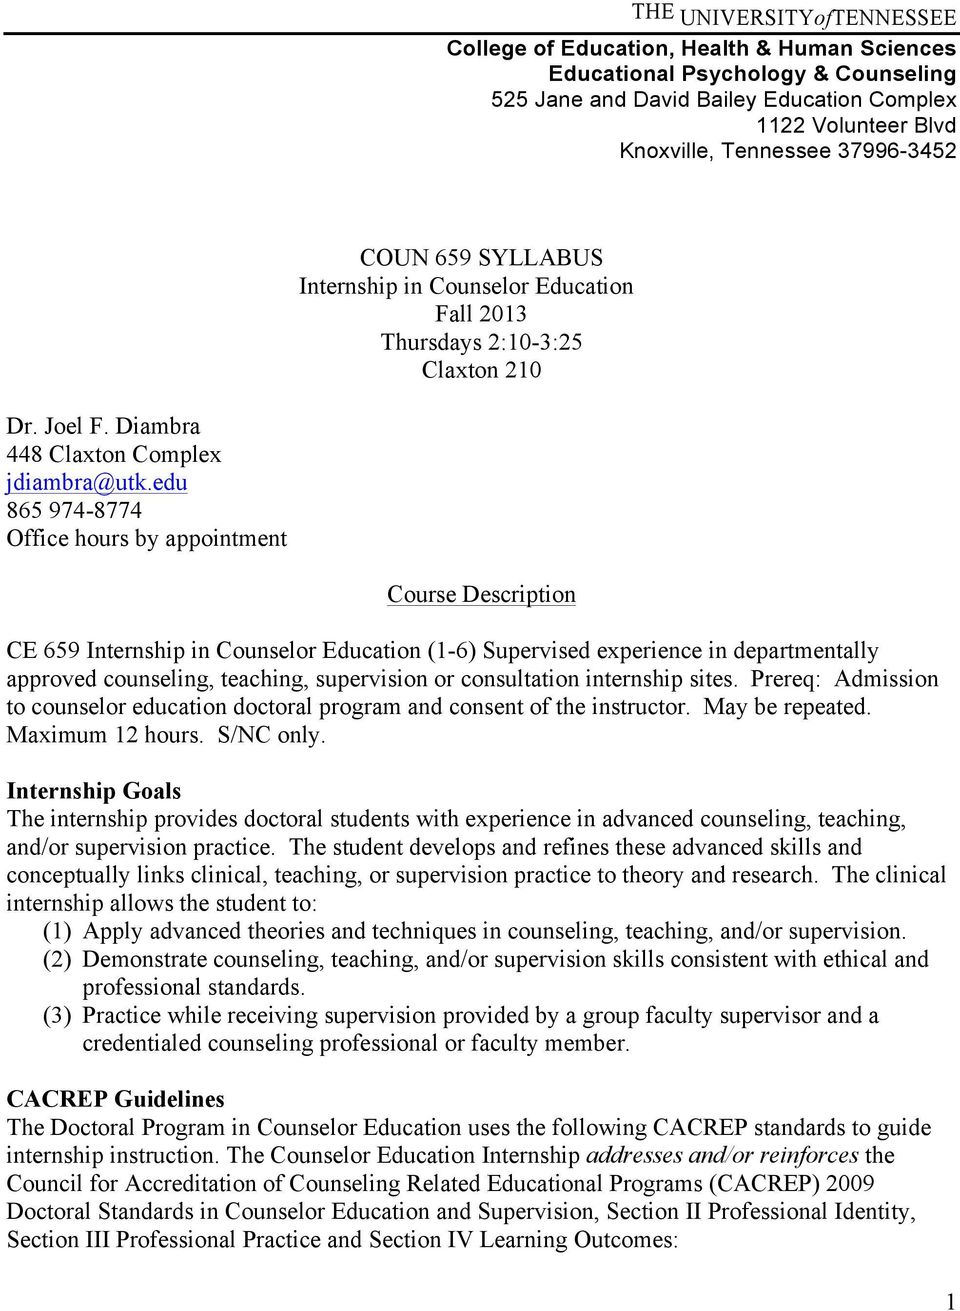 edu 865 974-8774 Office hours by appointment Course Description CE 659 Internship in Counselor Education (1-6) Supervised experience in departmentally approved counseling, teaching, supervision or